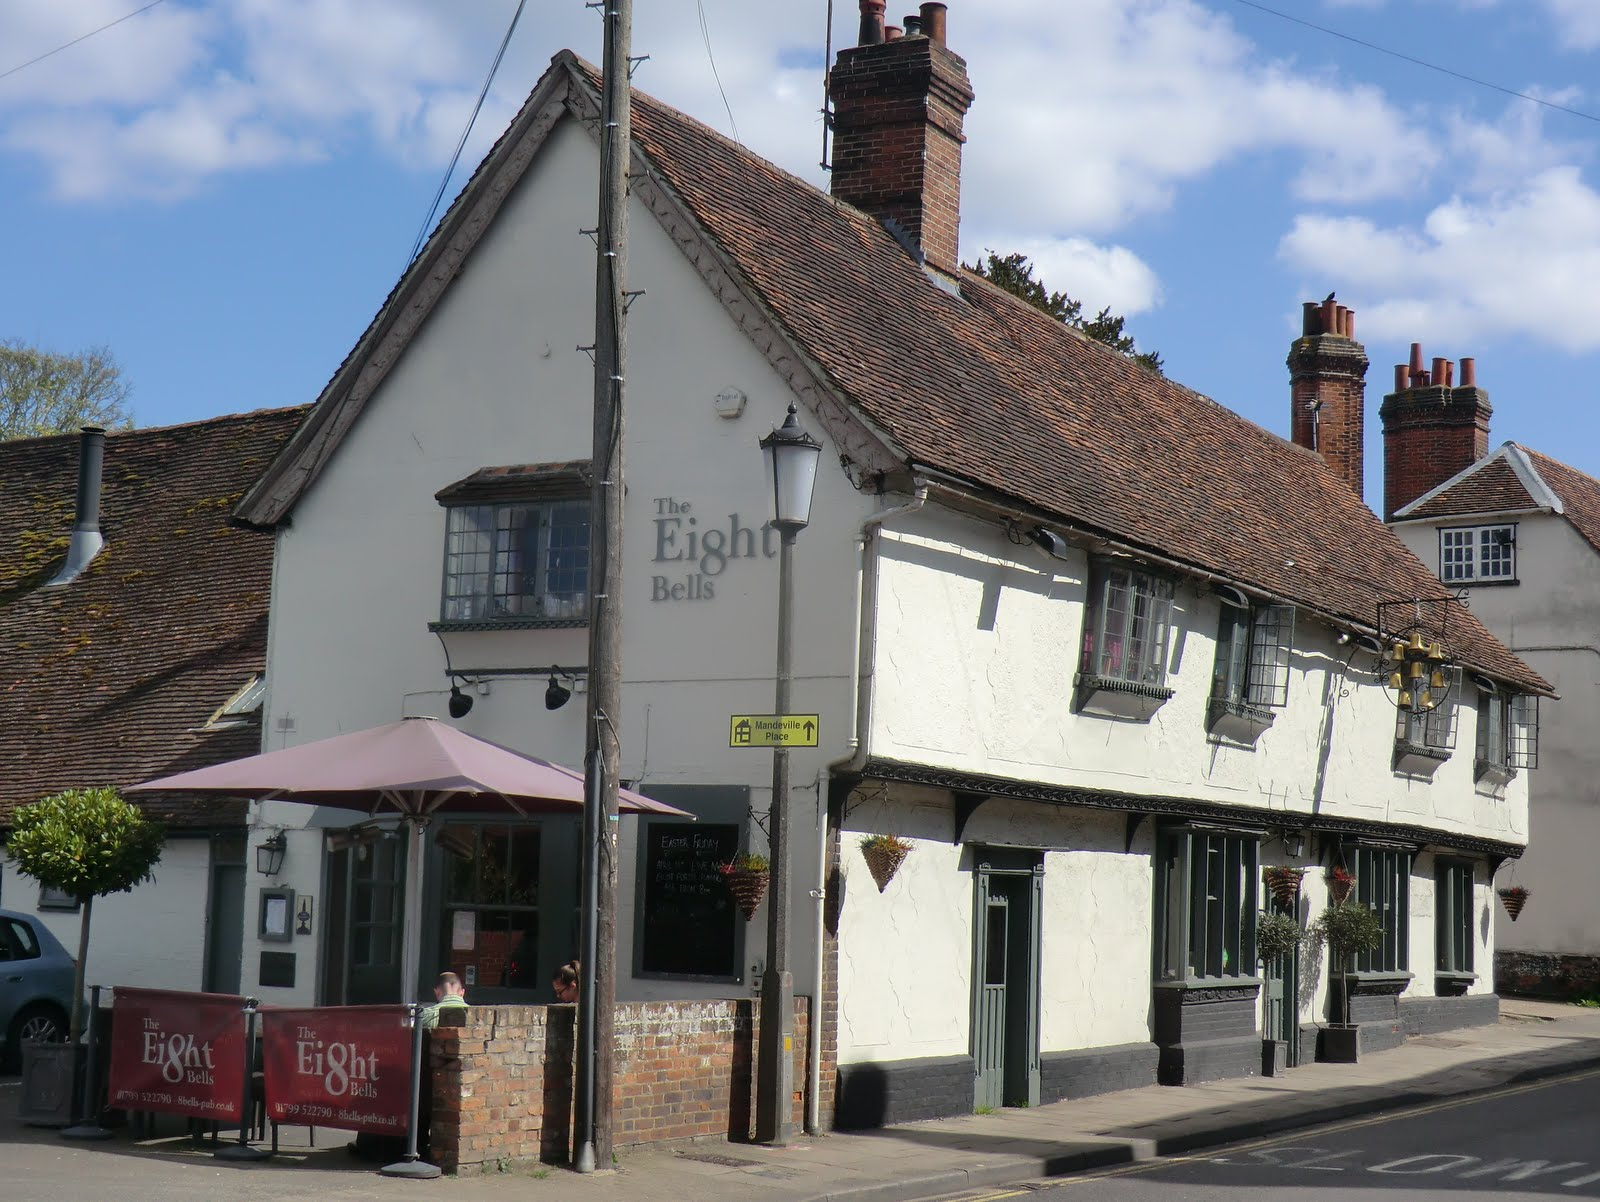 CIMG9769 The Eight Bells, Saffron Walden